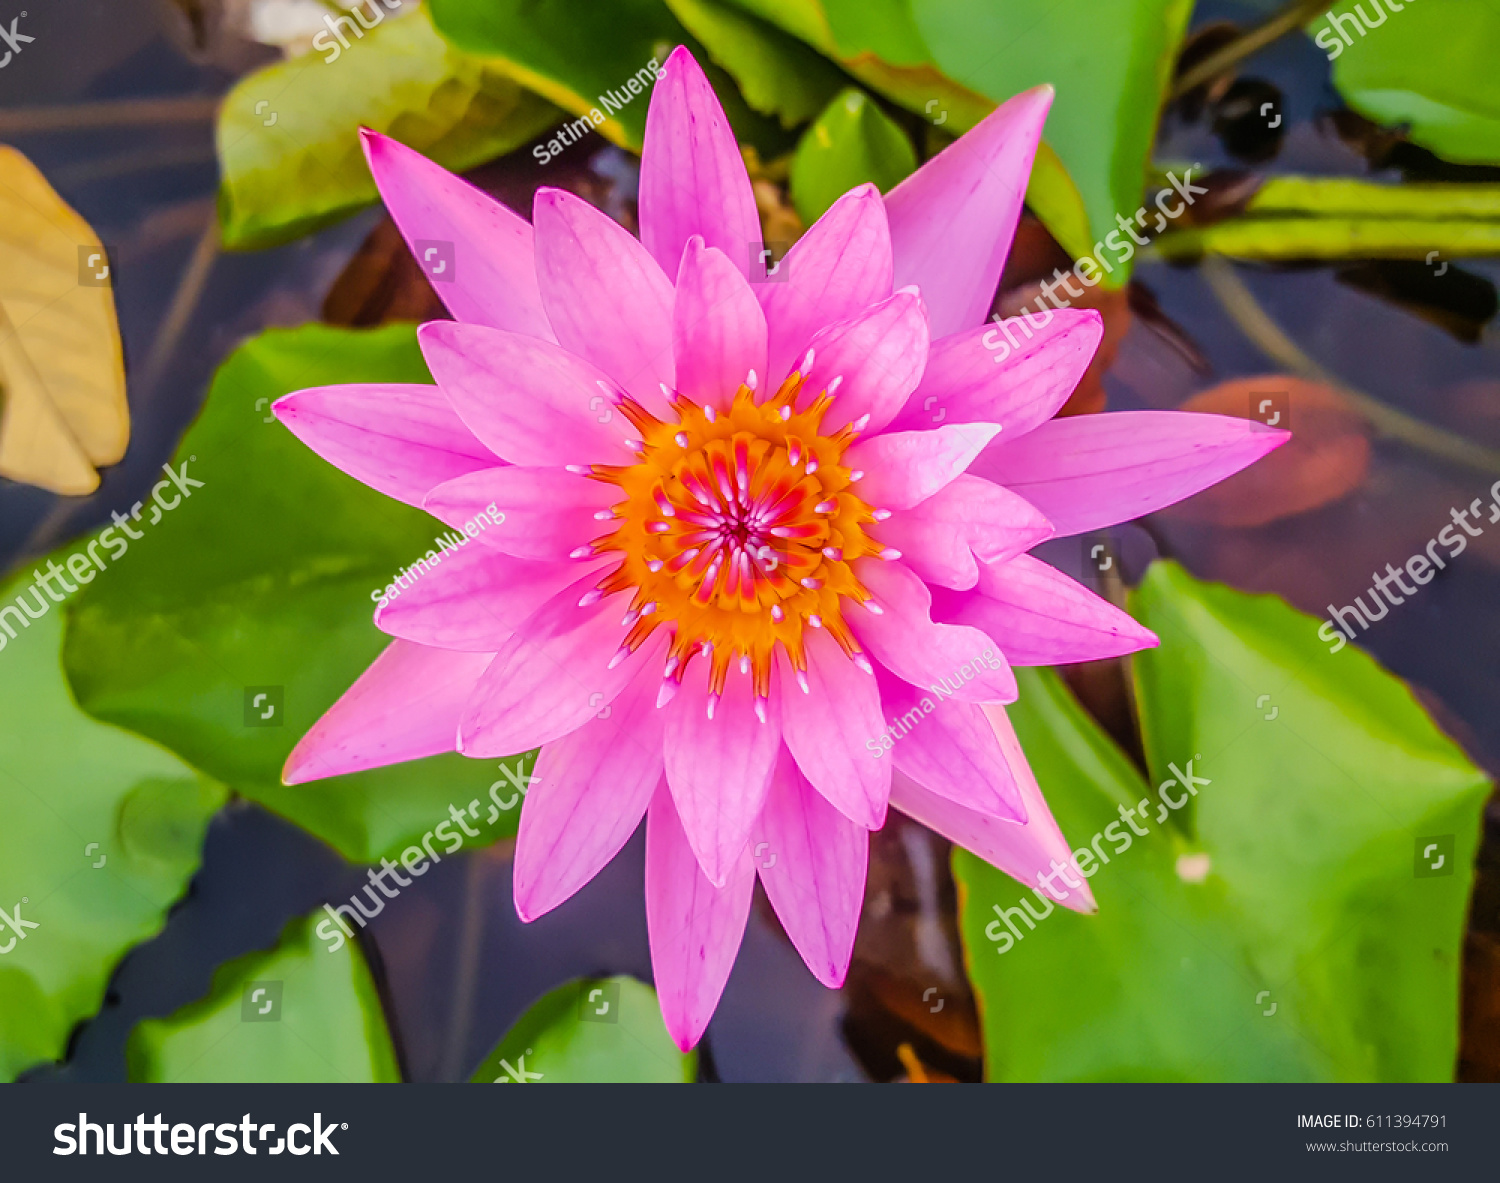 Beautiful blooming pink water lily and lily pad background ez canvas id 611394791 izmirmasajfo